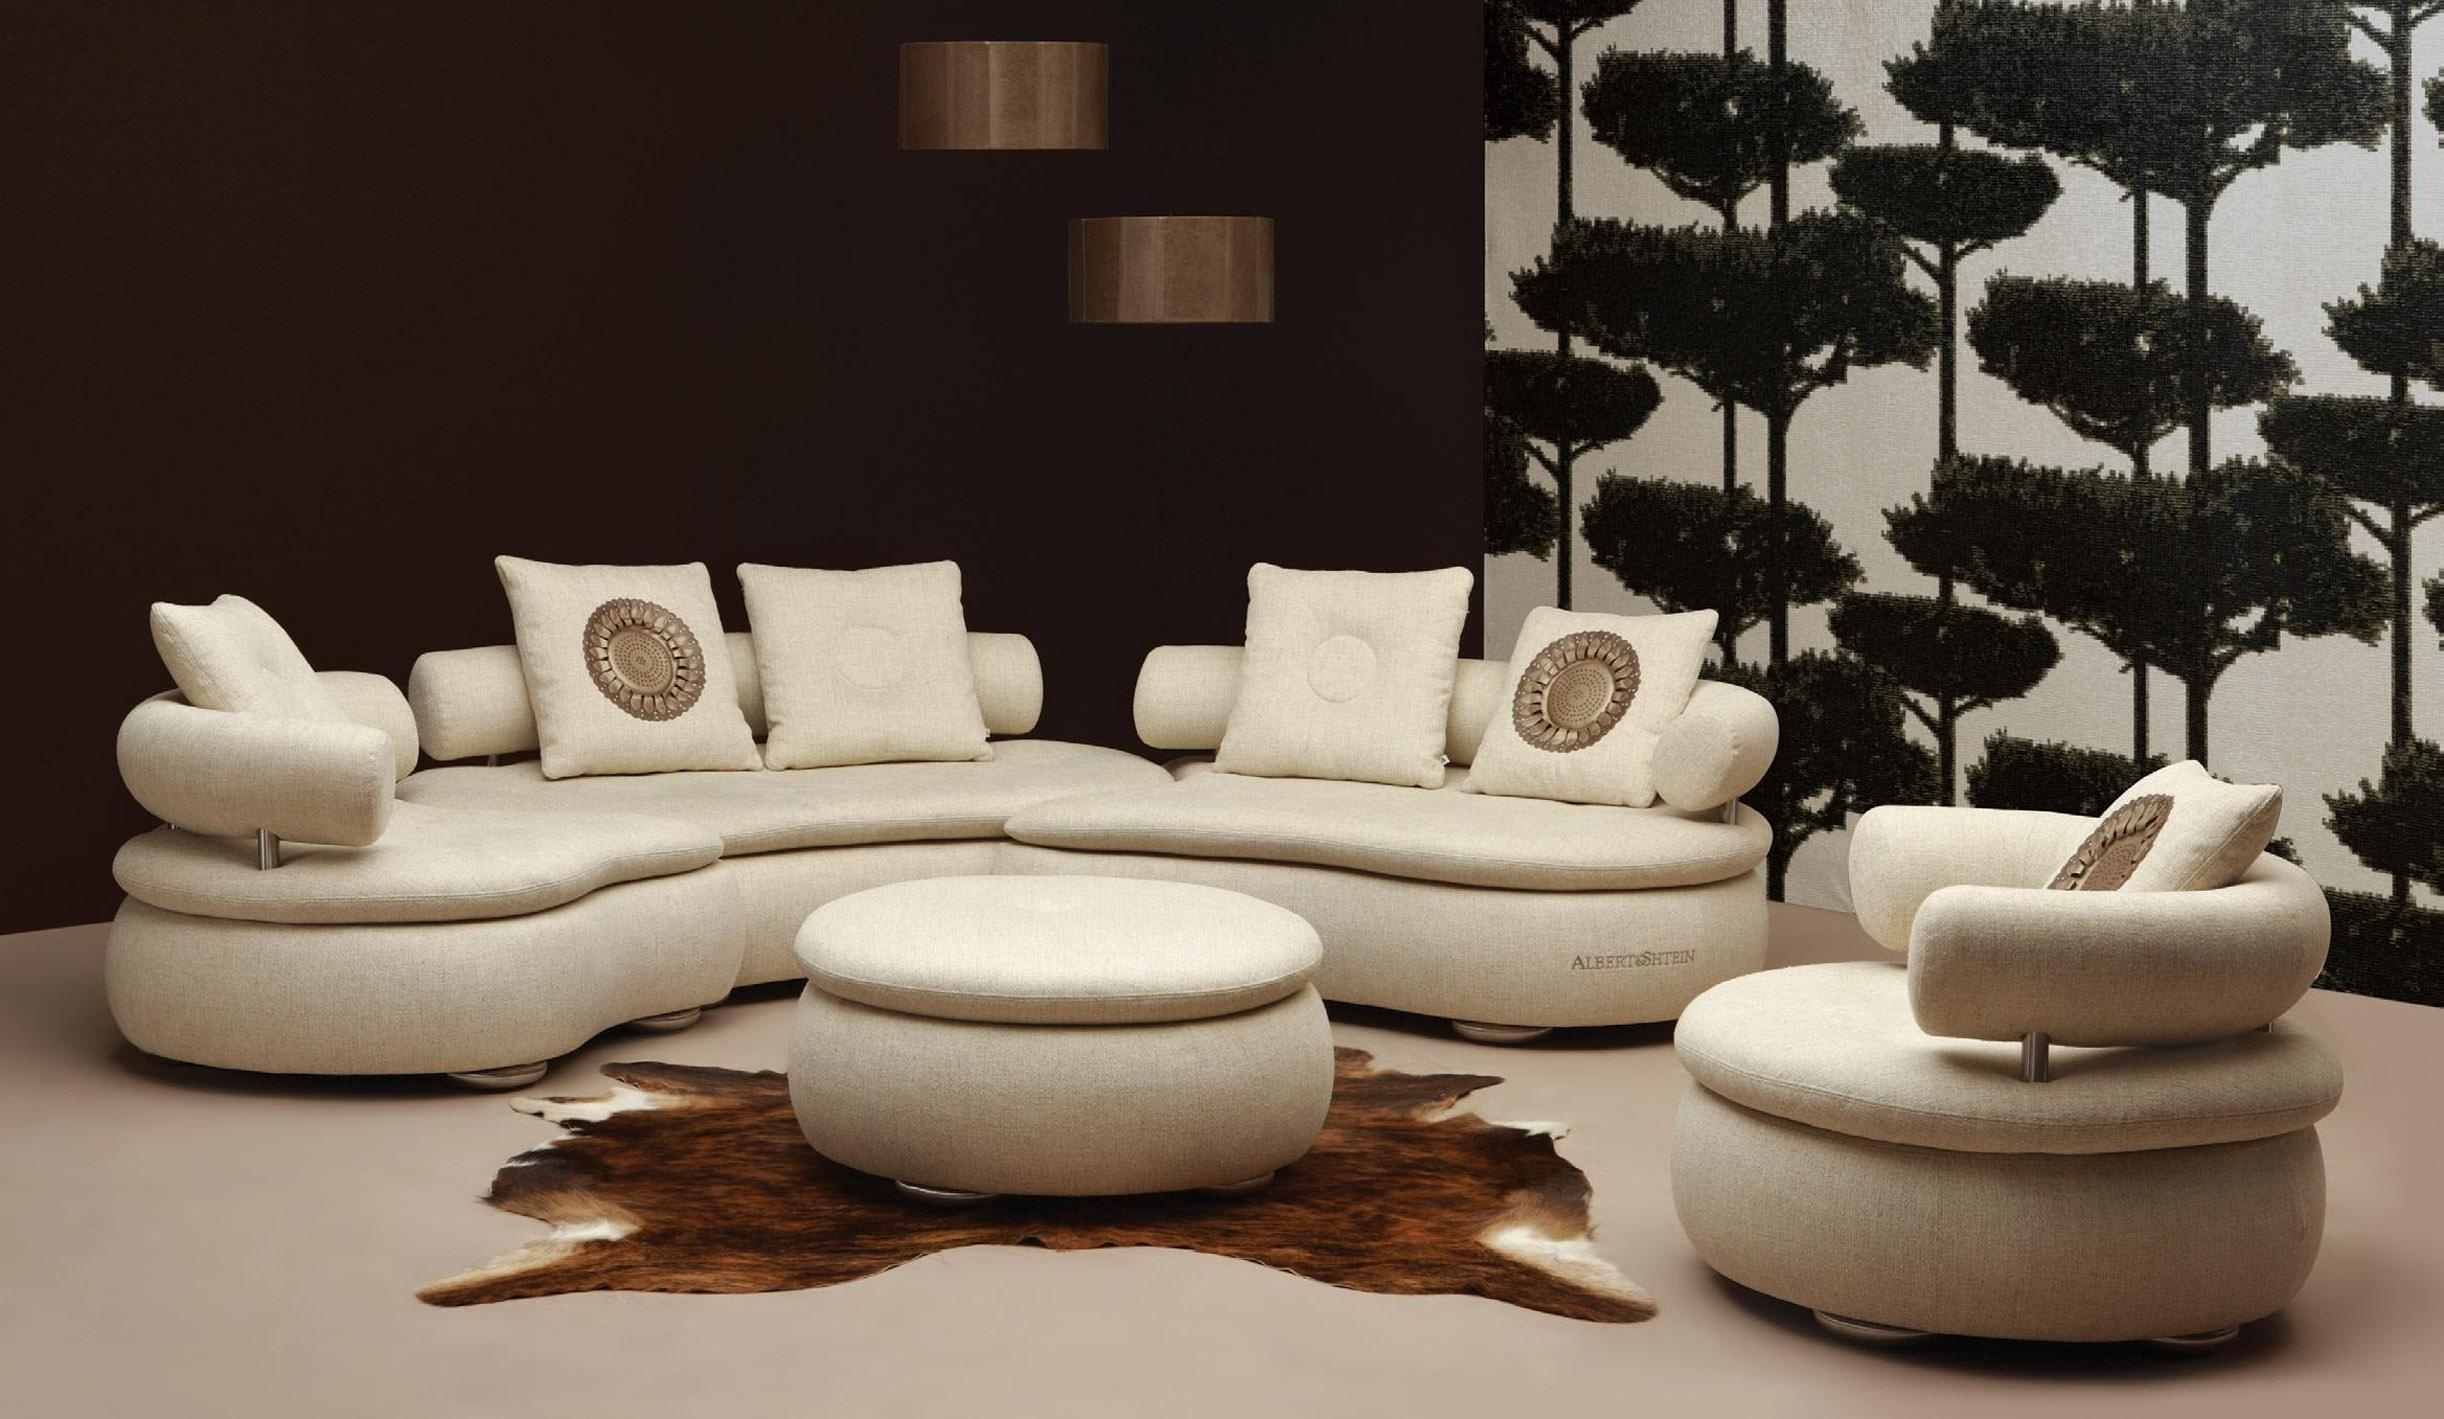 Oval Leather Sectional Sofas Modern Contemporary – S3Net Intended For Oval Sofas (Image 14 of 21)